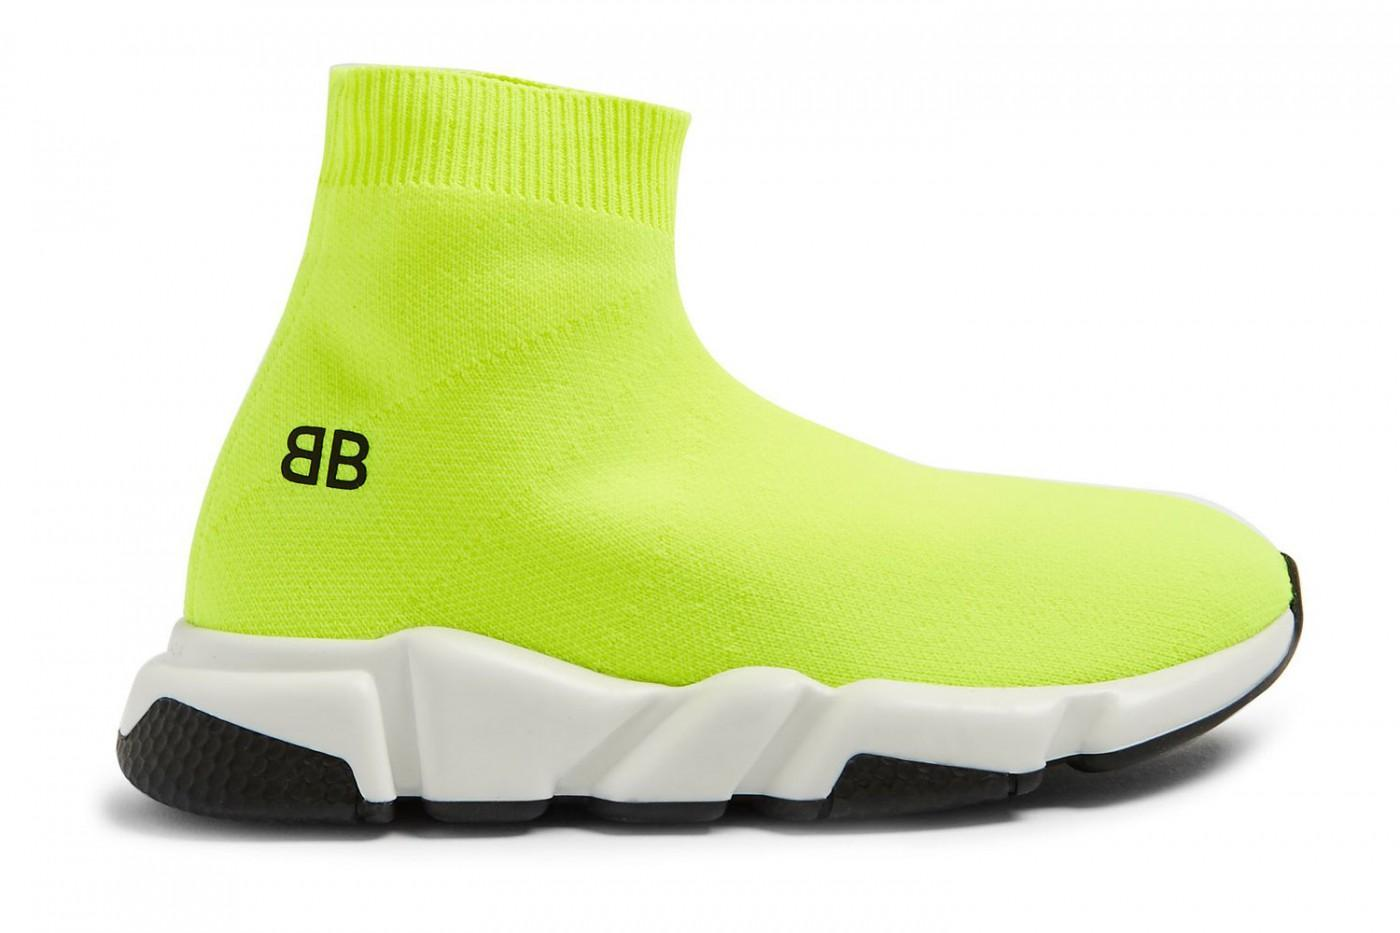 558d93ffed982 Balenciaga s Kids Shoes Are Here And They Cost  295